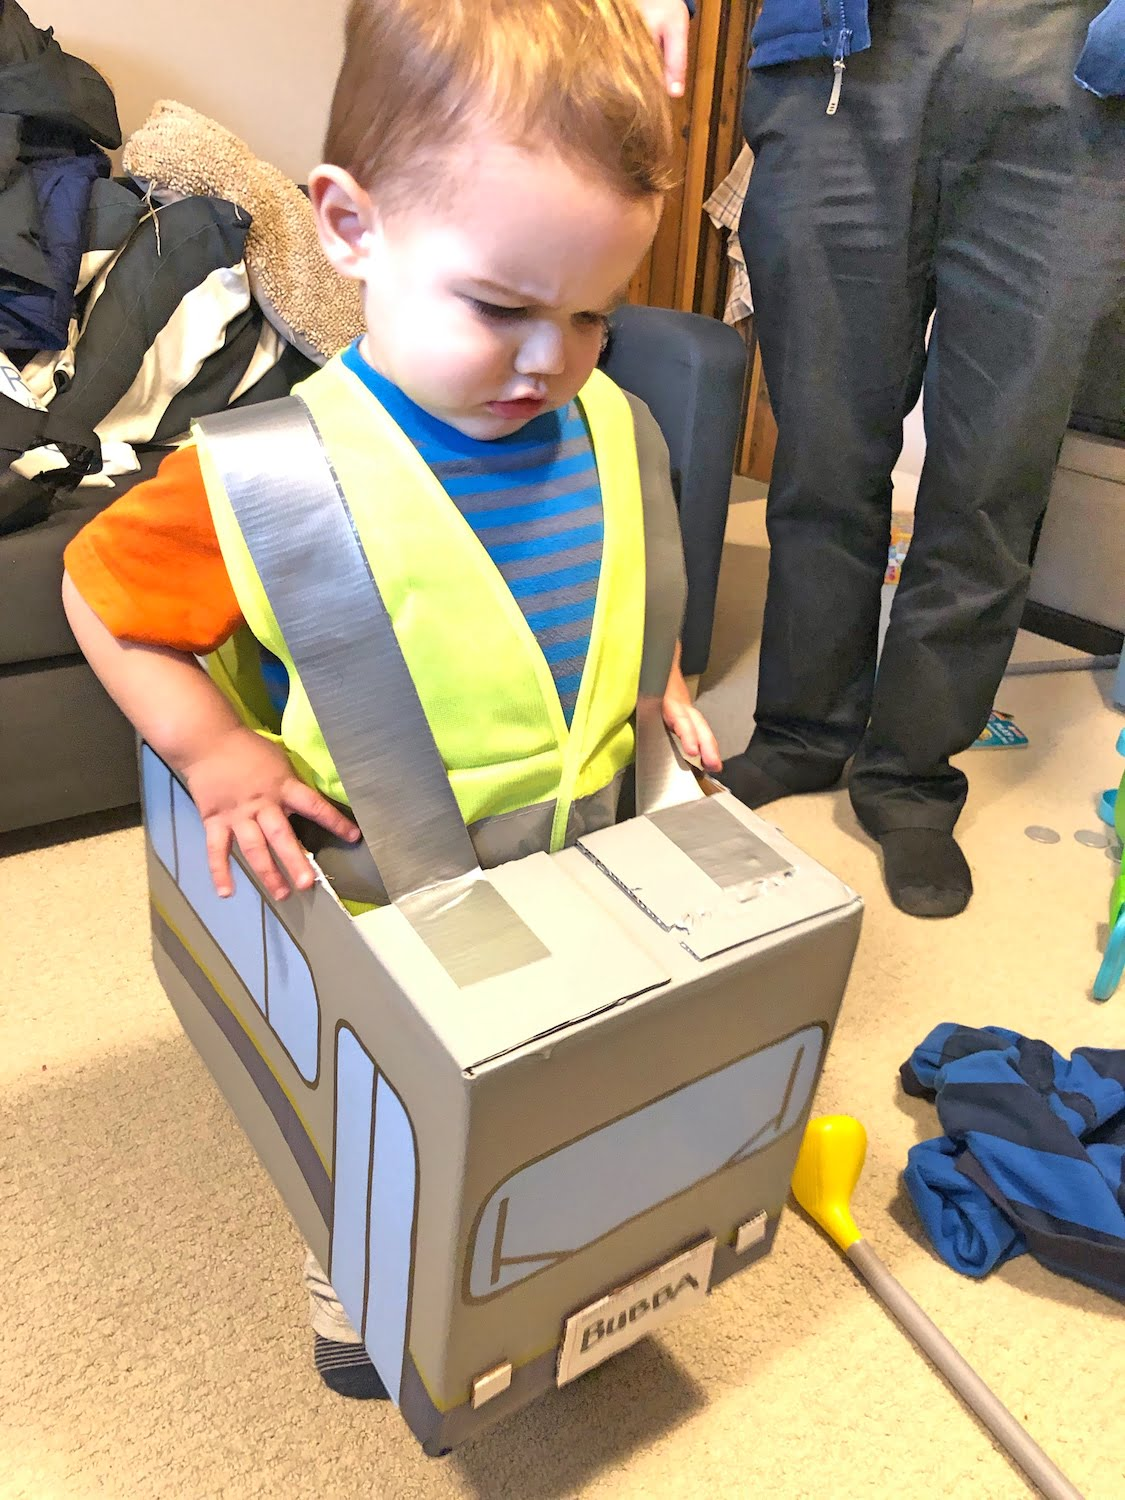 Toddler Unhappy in a Homemade Bus Costume